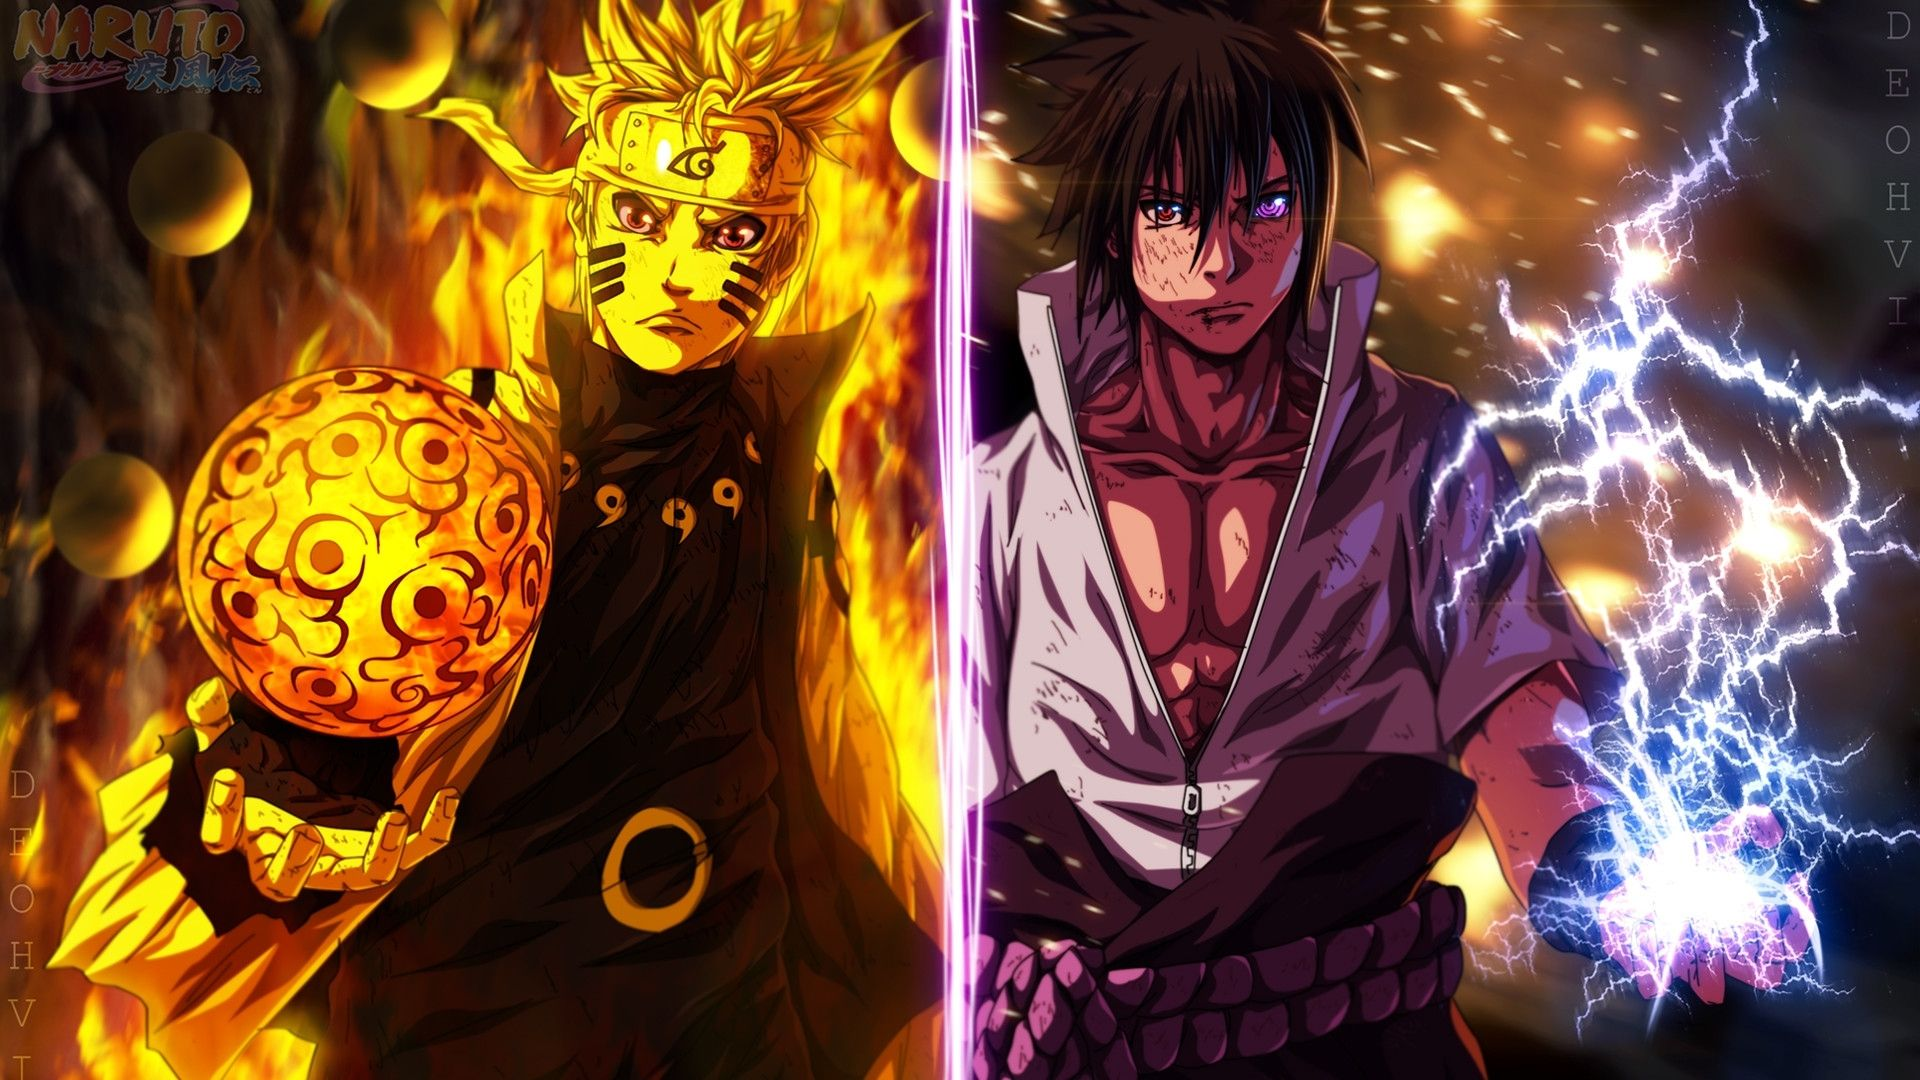 10 Most Popular Naruto Hd Wallpaper 1080p Full Hd 1080p For Pc Background Naruto E Sasuke Desenho Naruto E Sasuke Naruto Vs Sasuke